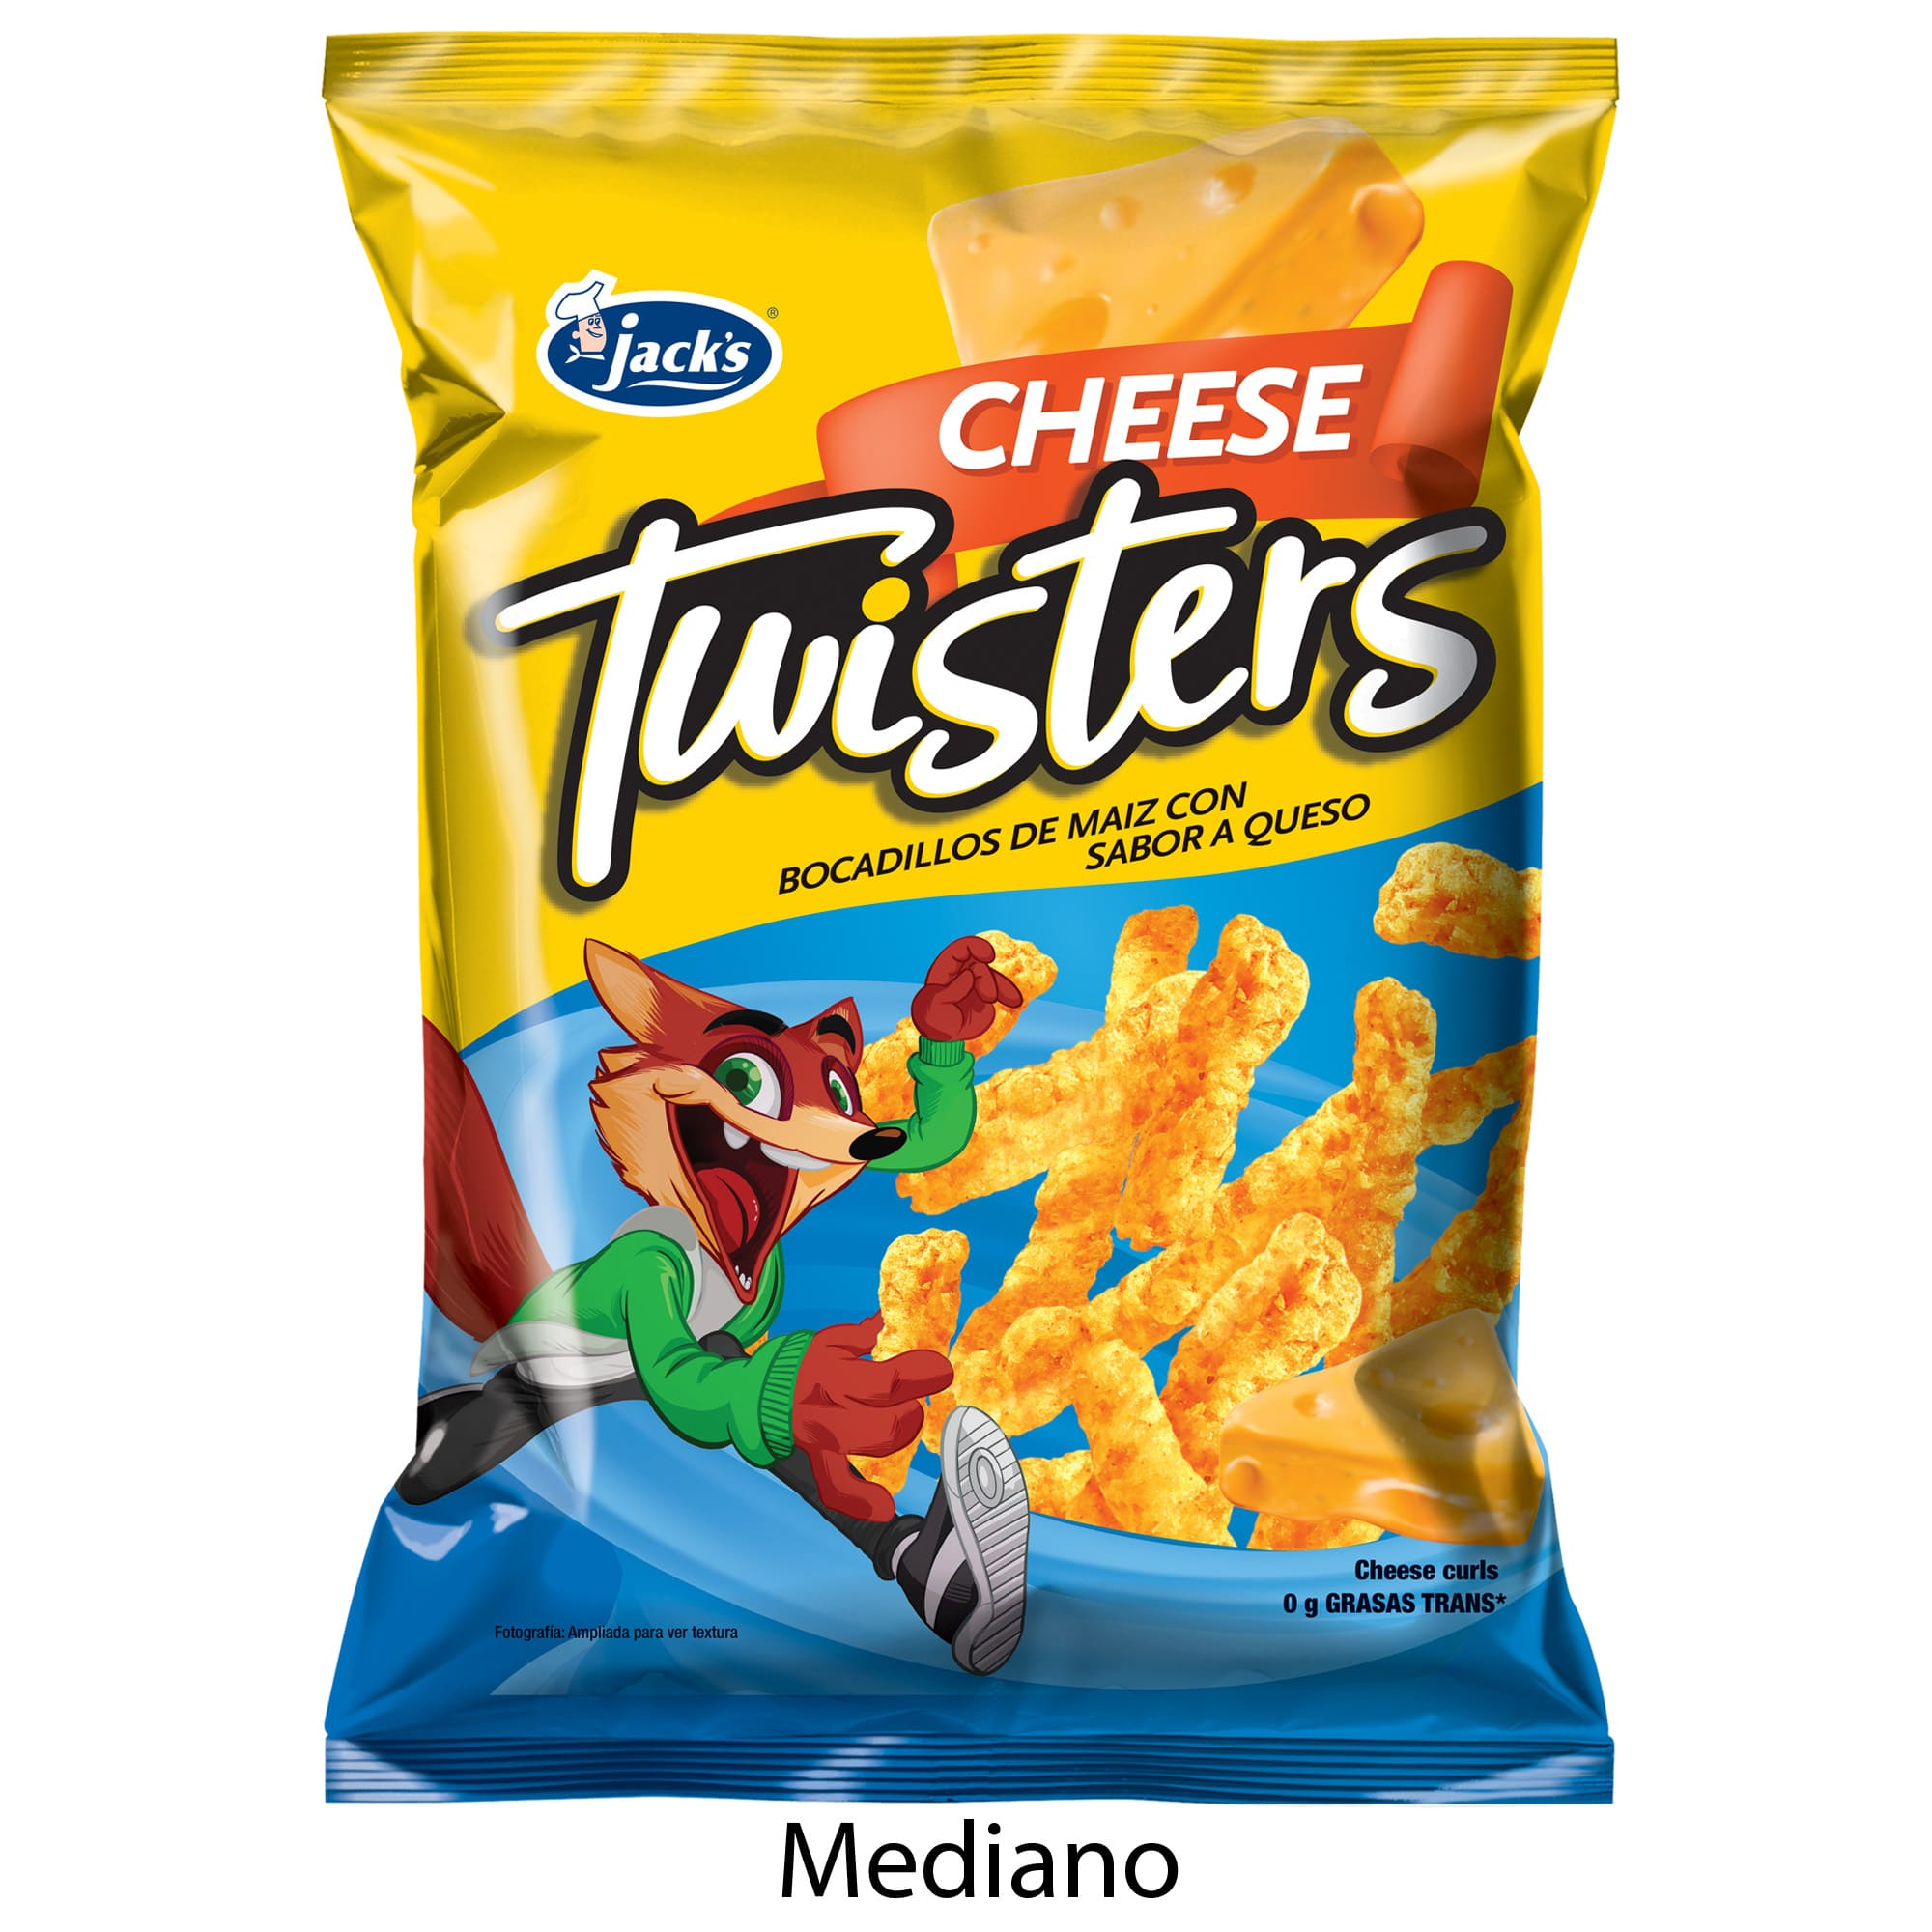 TWISTERS QUESO presentac pag web